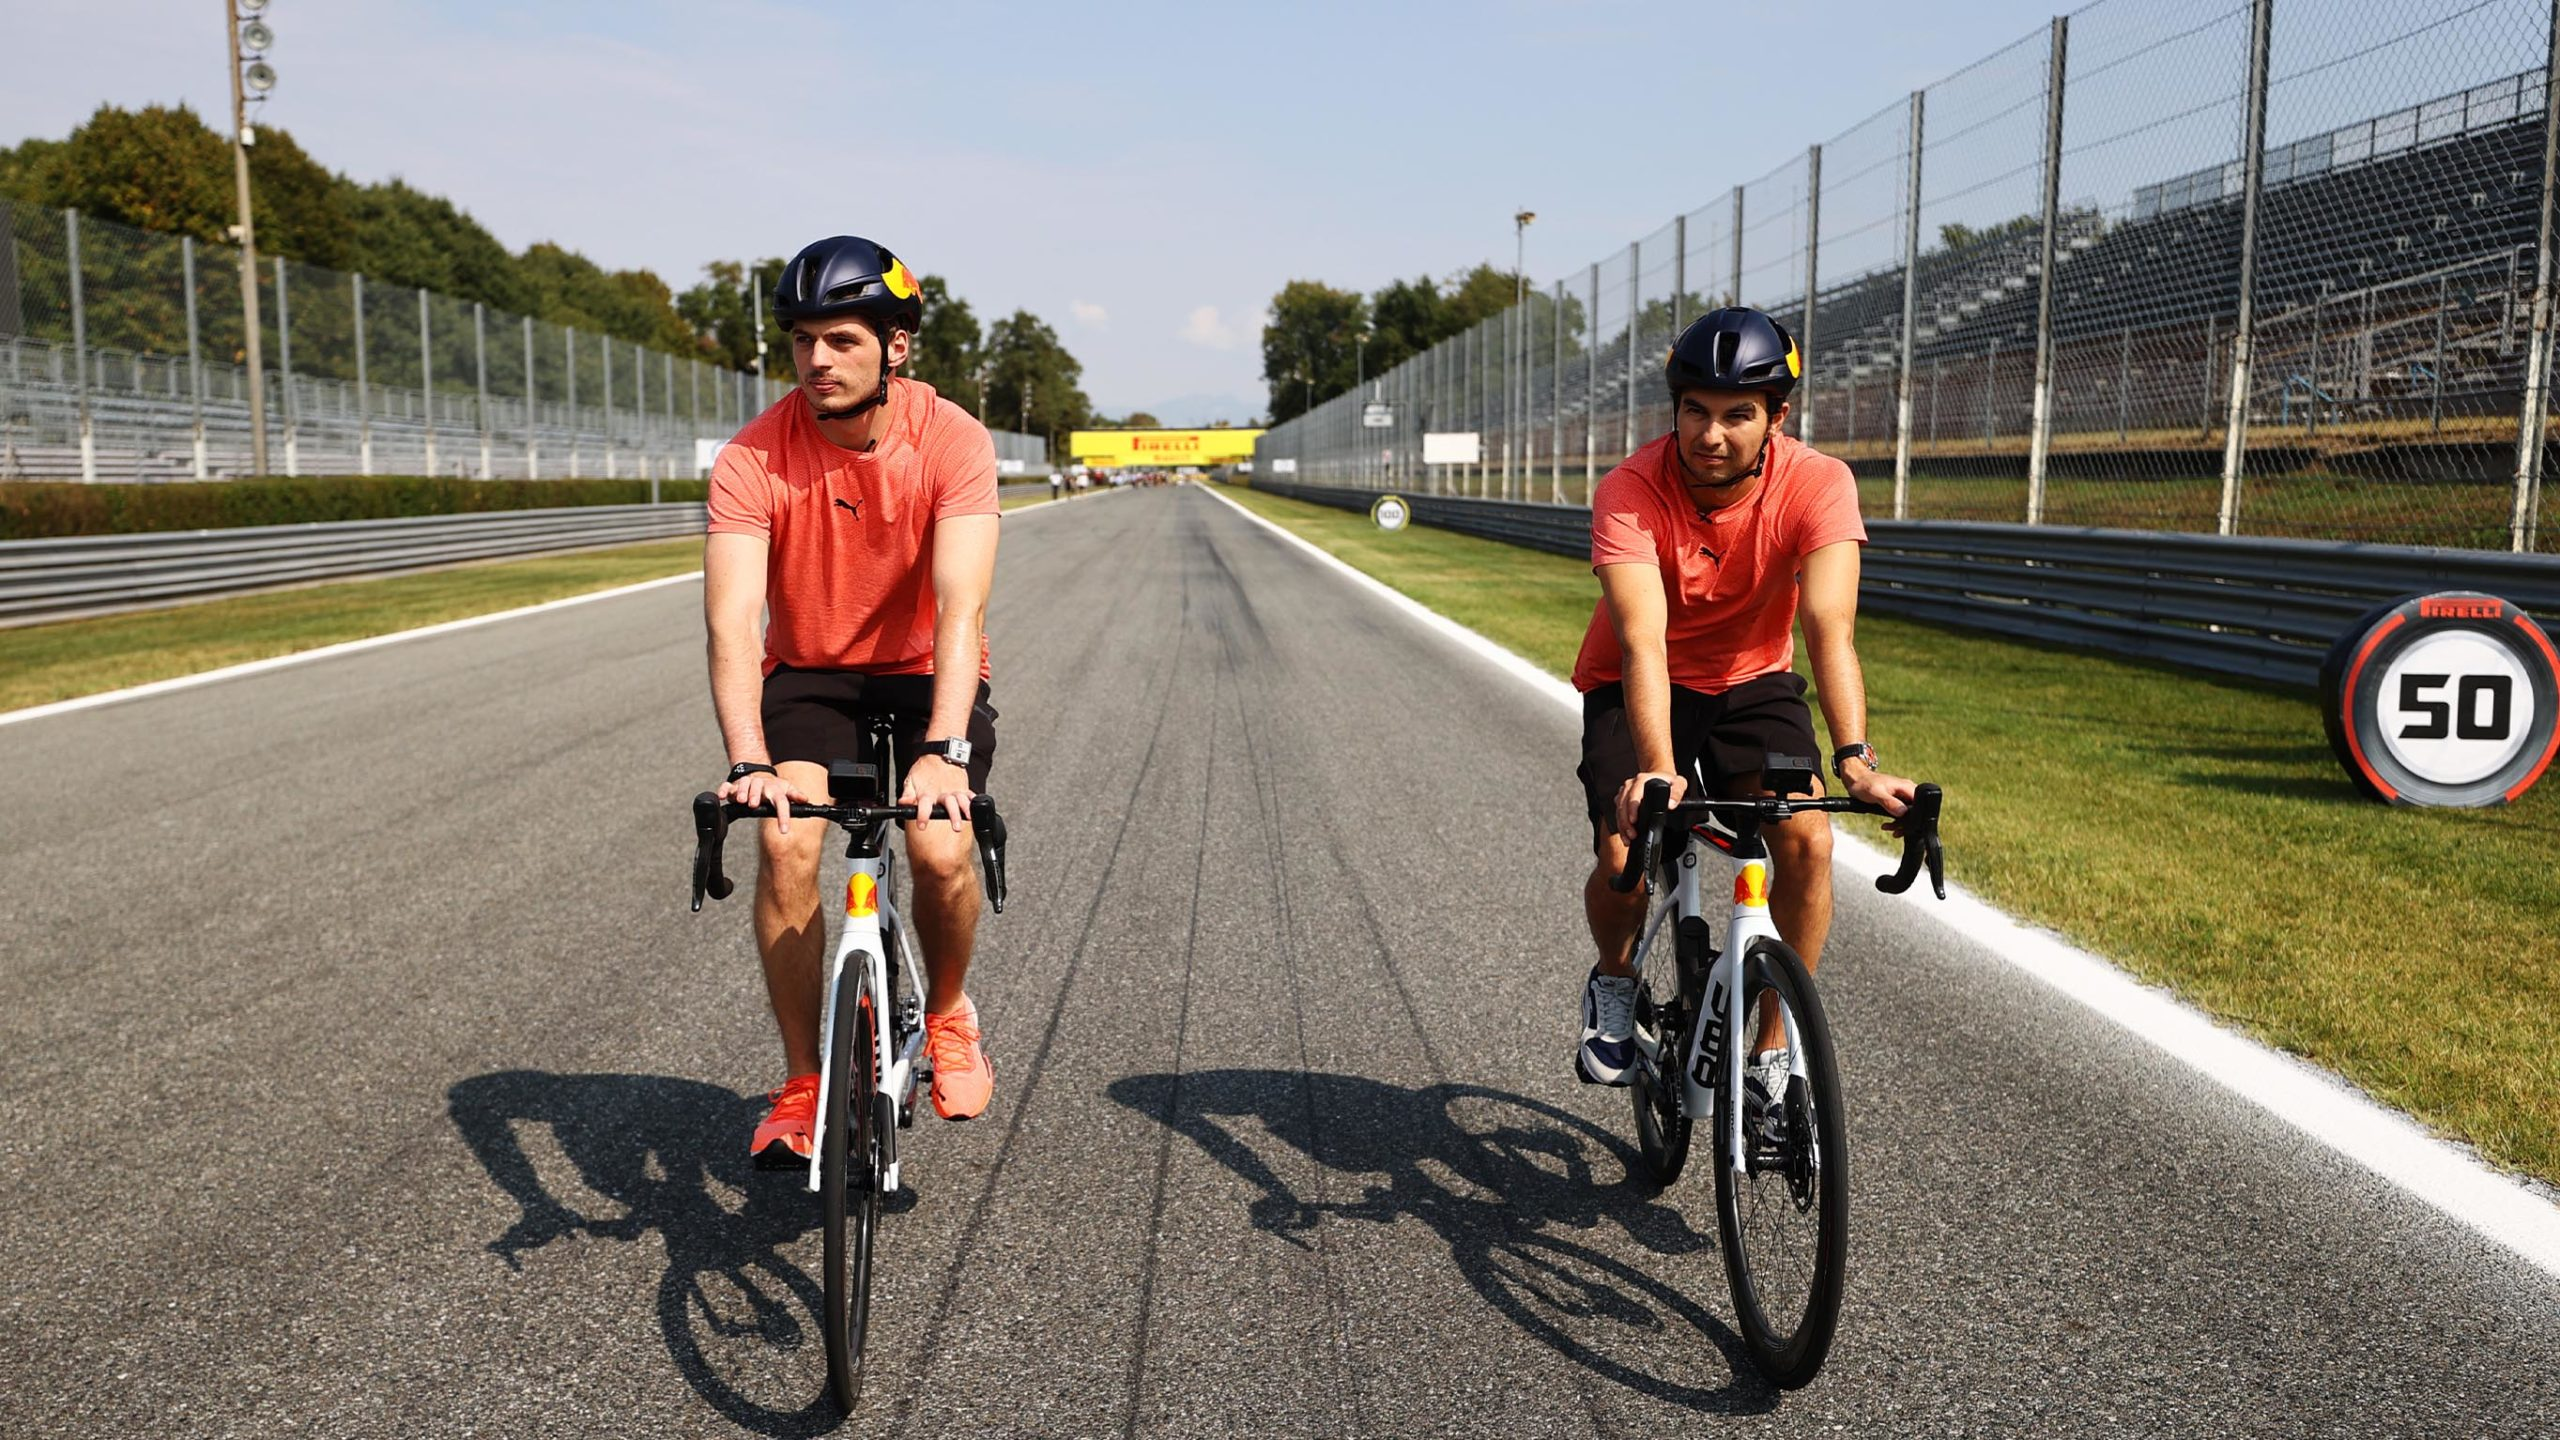 Max Verstappen and Sergio Perez cycling at Monza